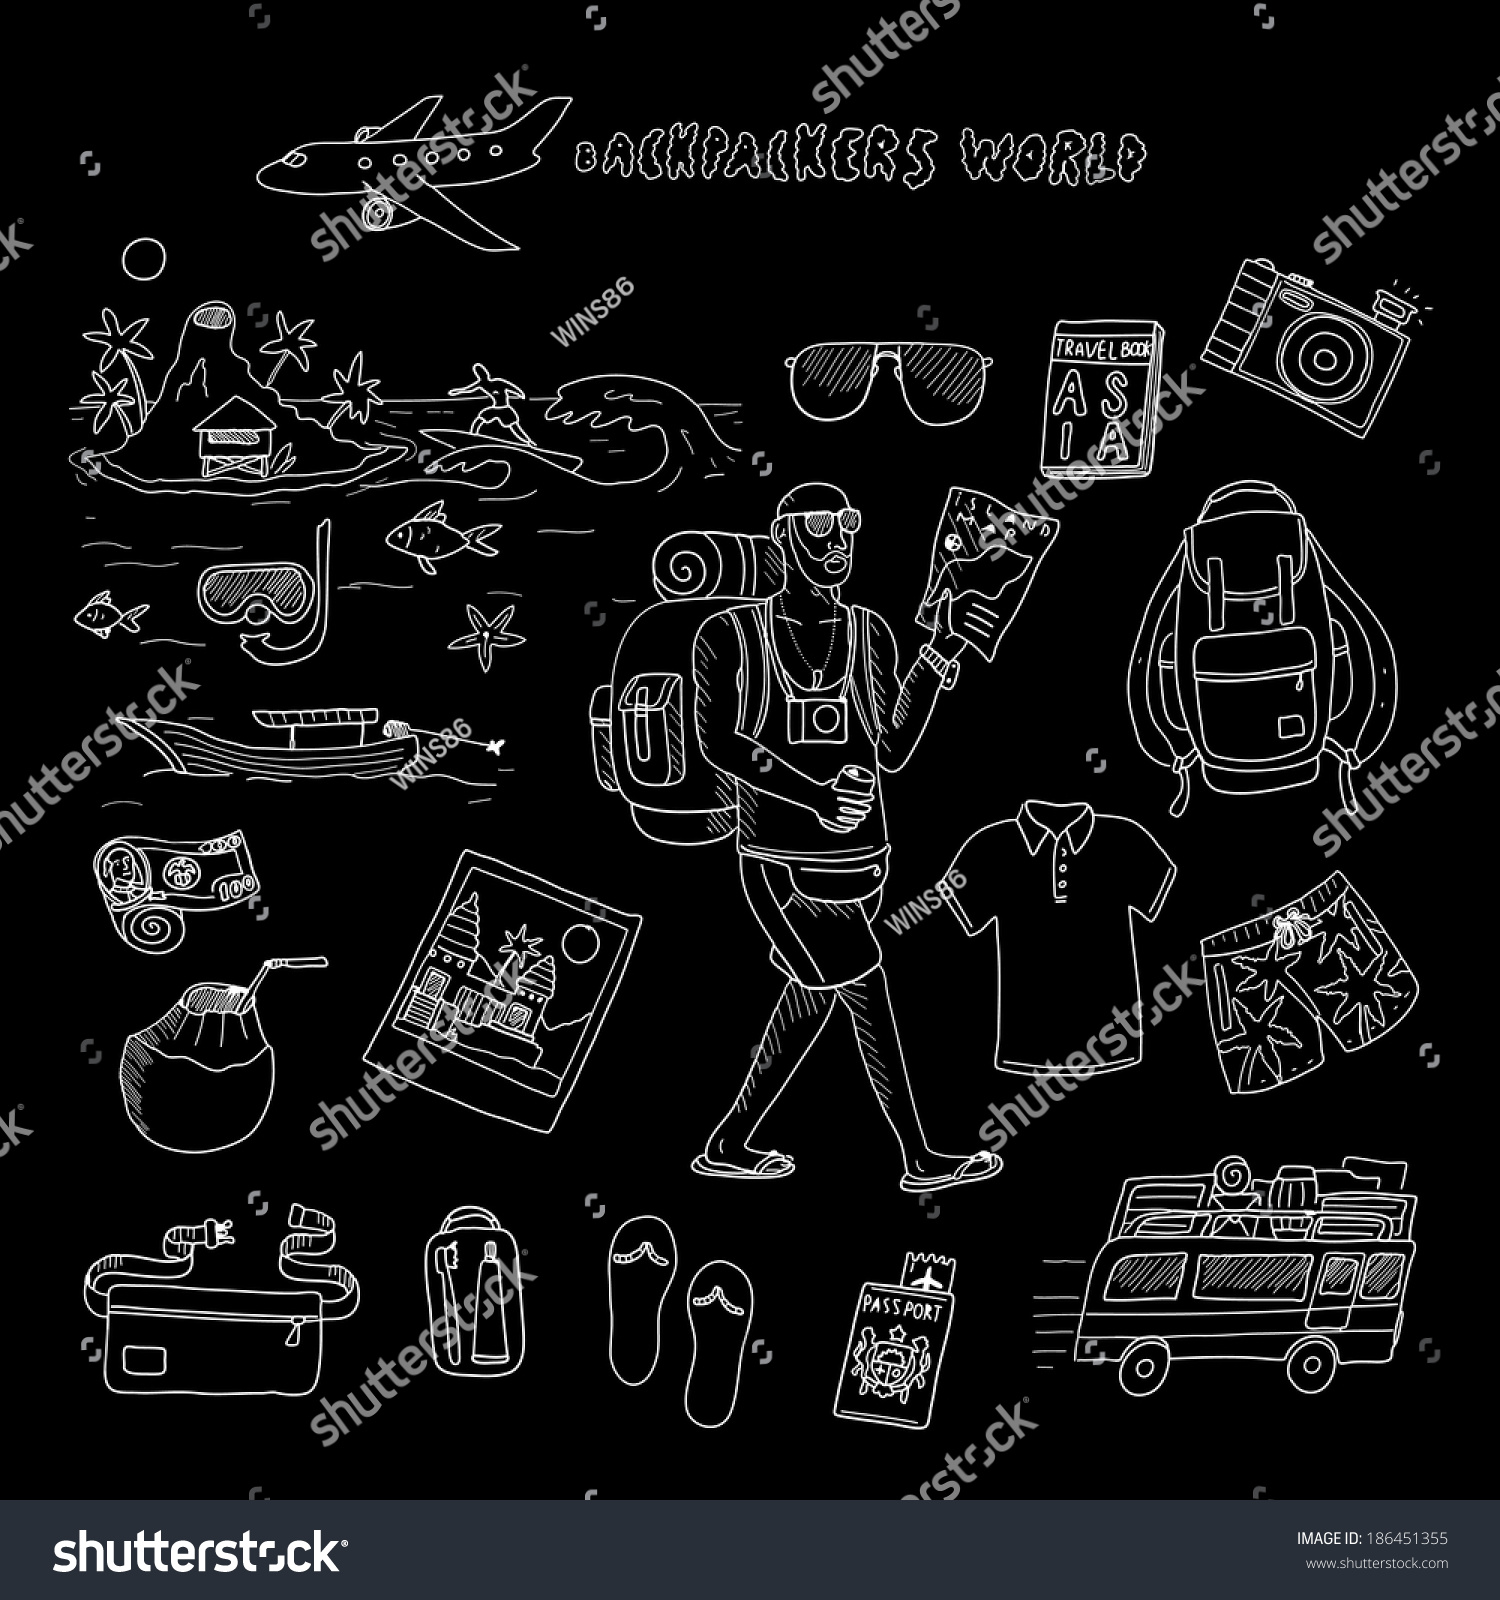 7d47ea900f Backpackers world. Travel. Doodle set in vector isolated on a black  background.